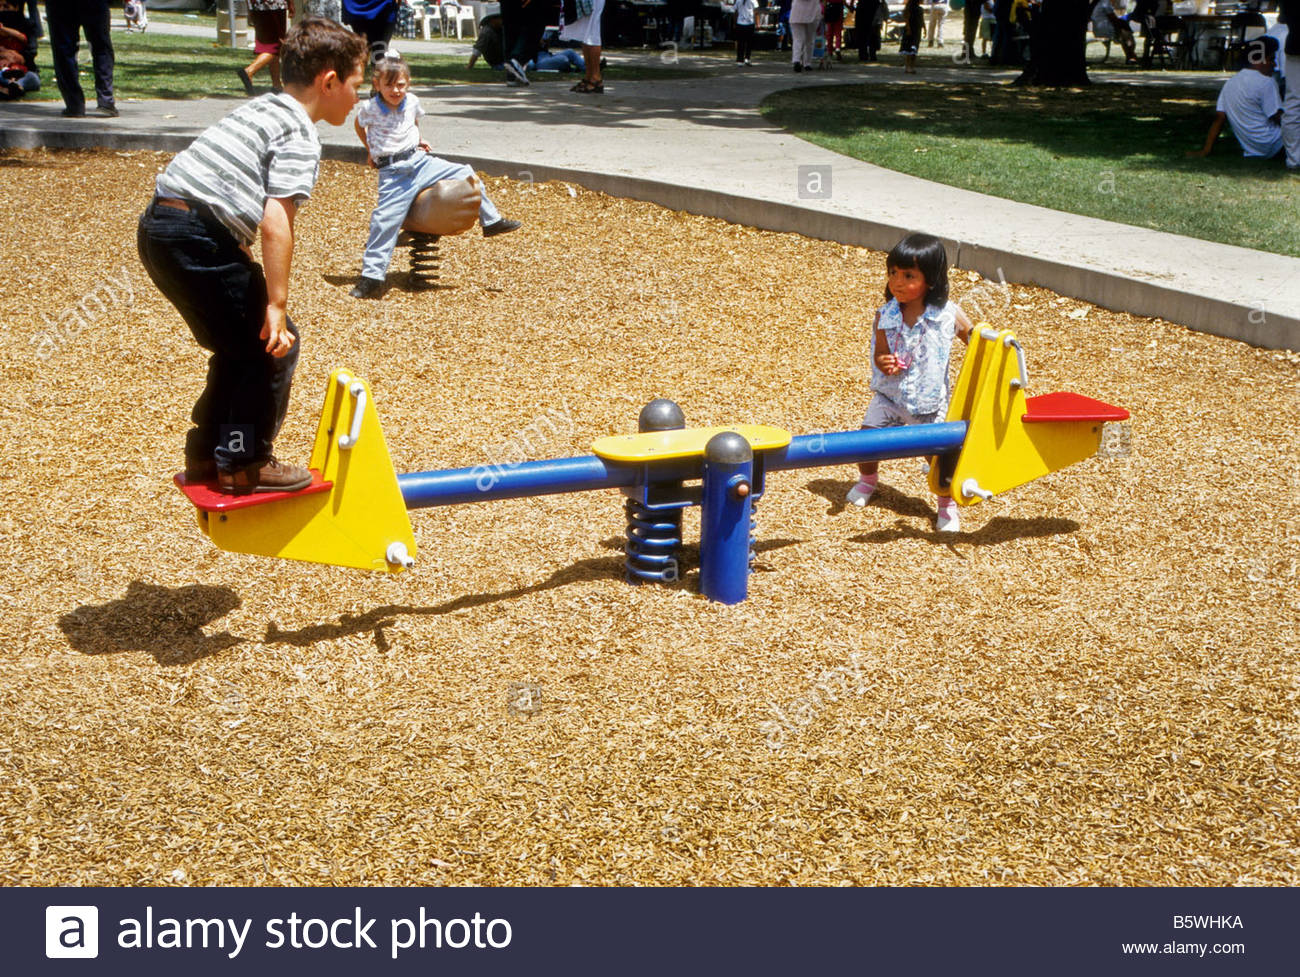 Lifetime Helicopter Teeter Totter | Airplane Teeter Totter | Teeter Totter